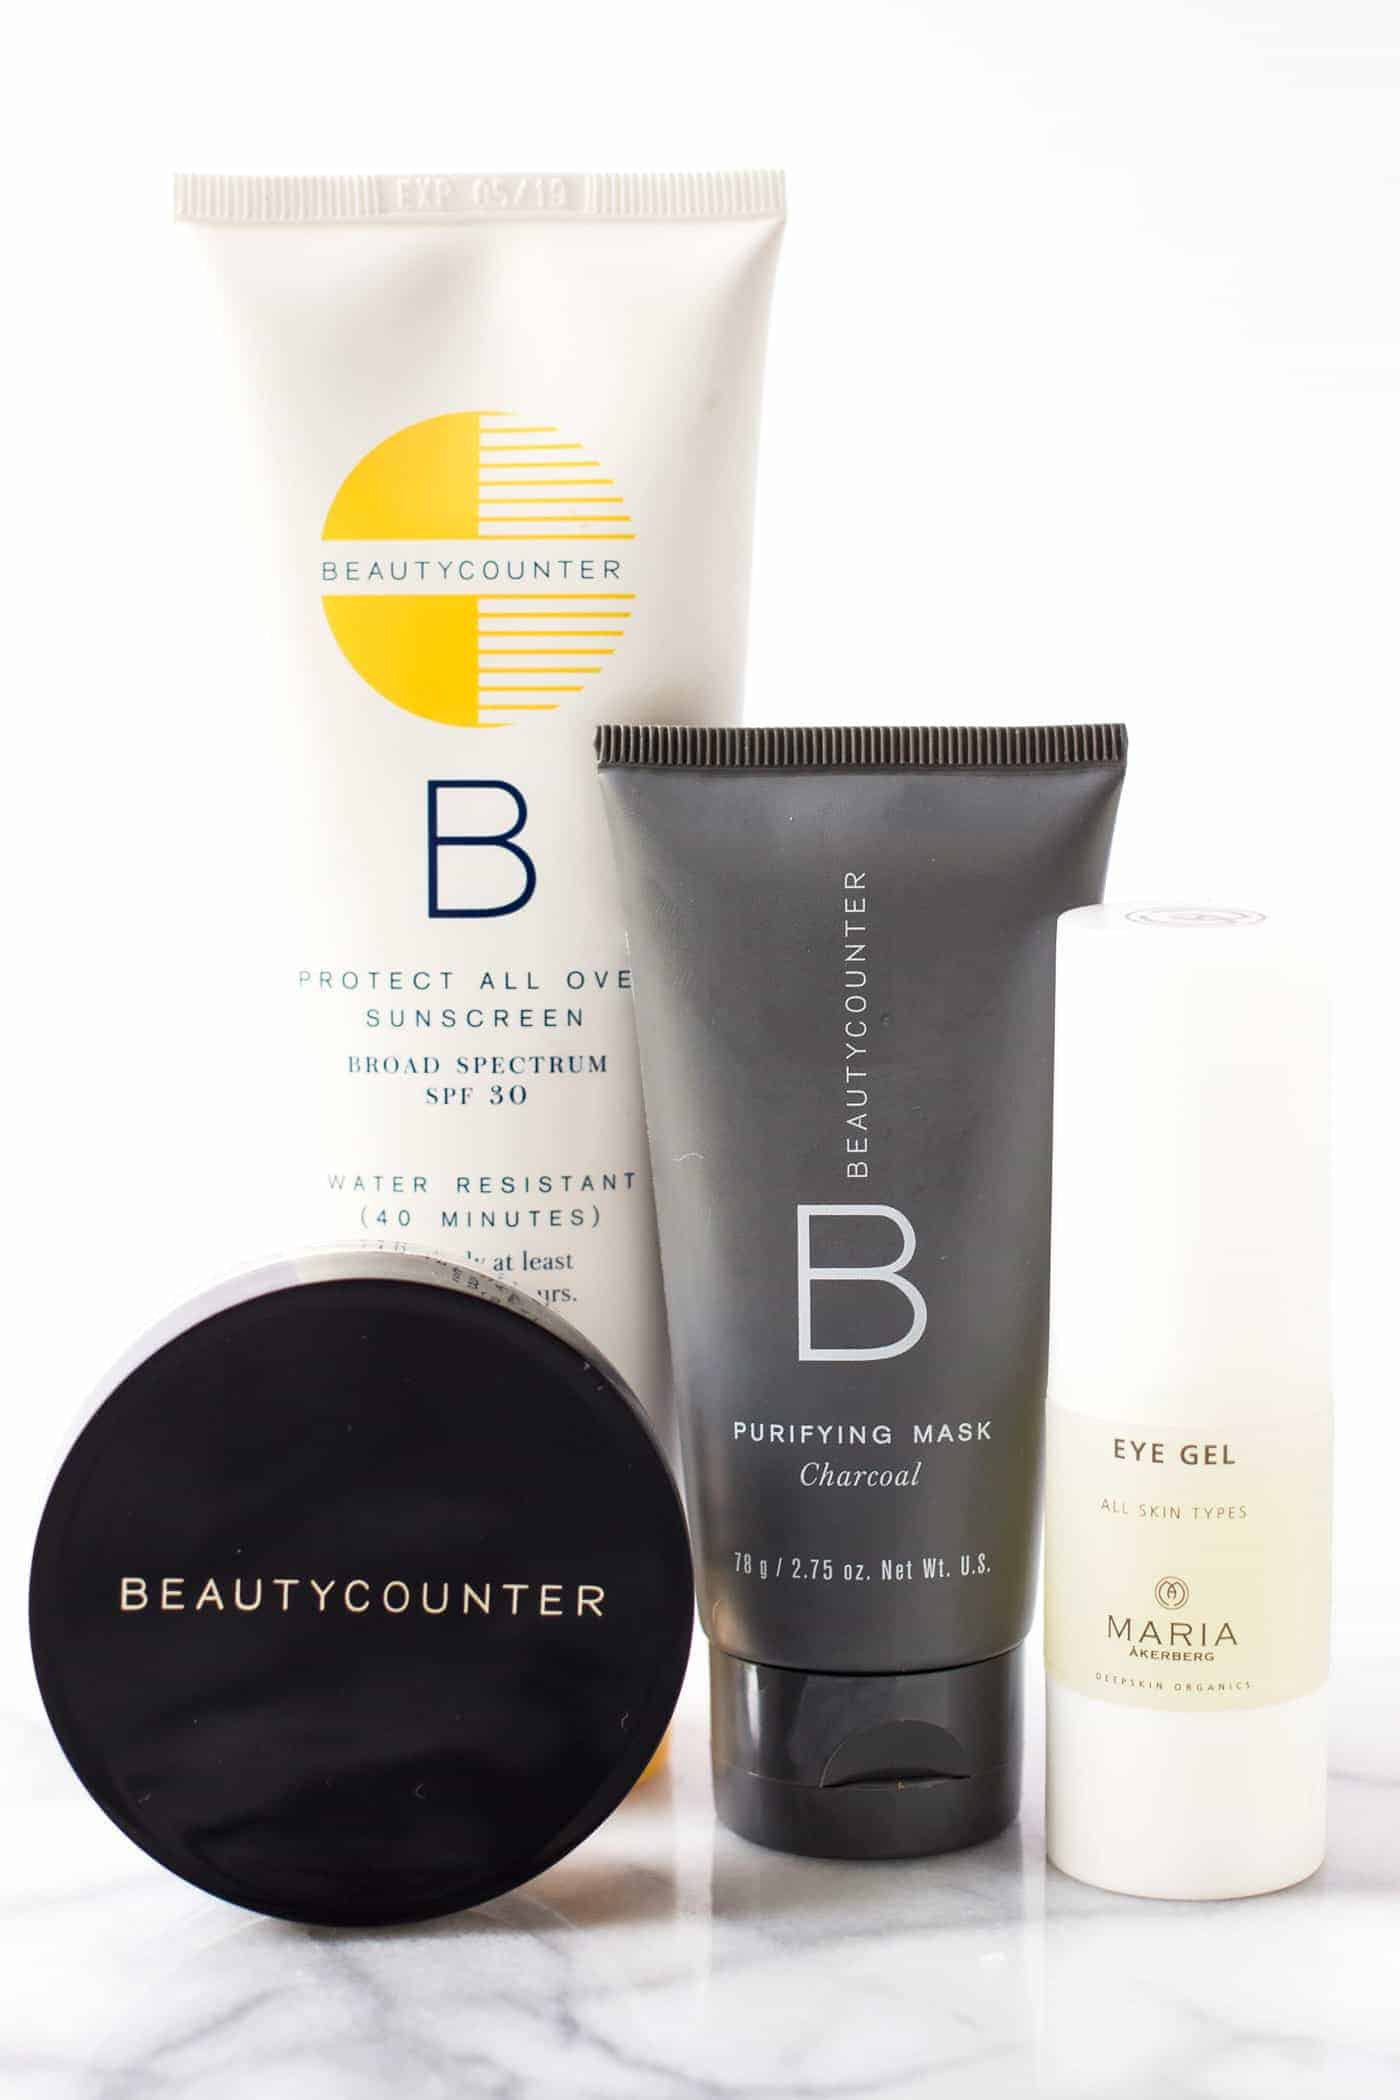 My favorite summer skincare products from Beautycounter and Maria Akerberg!